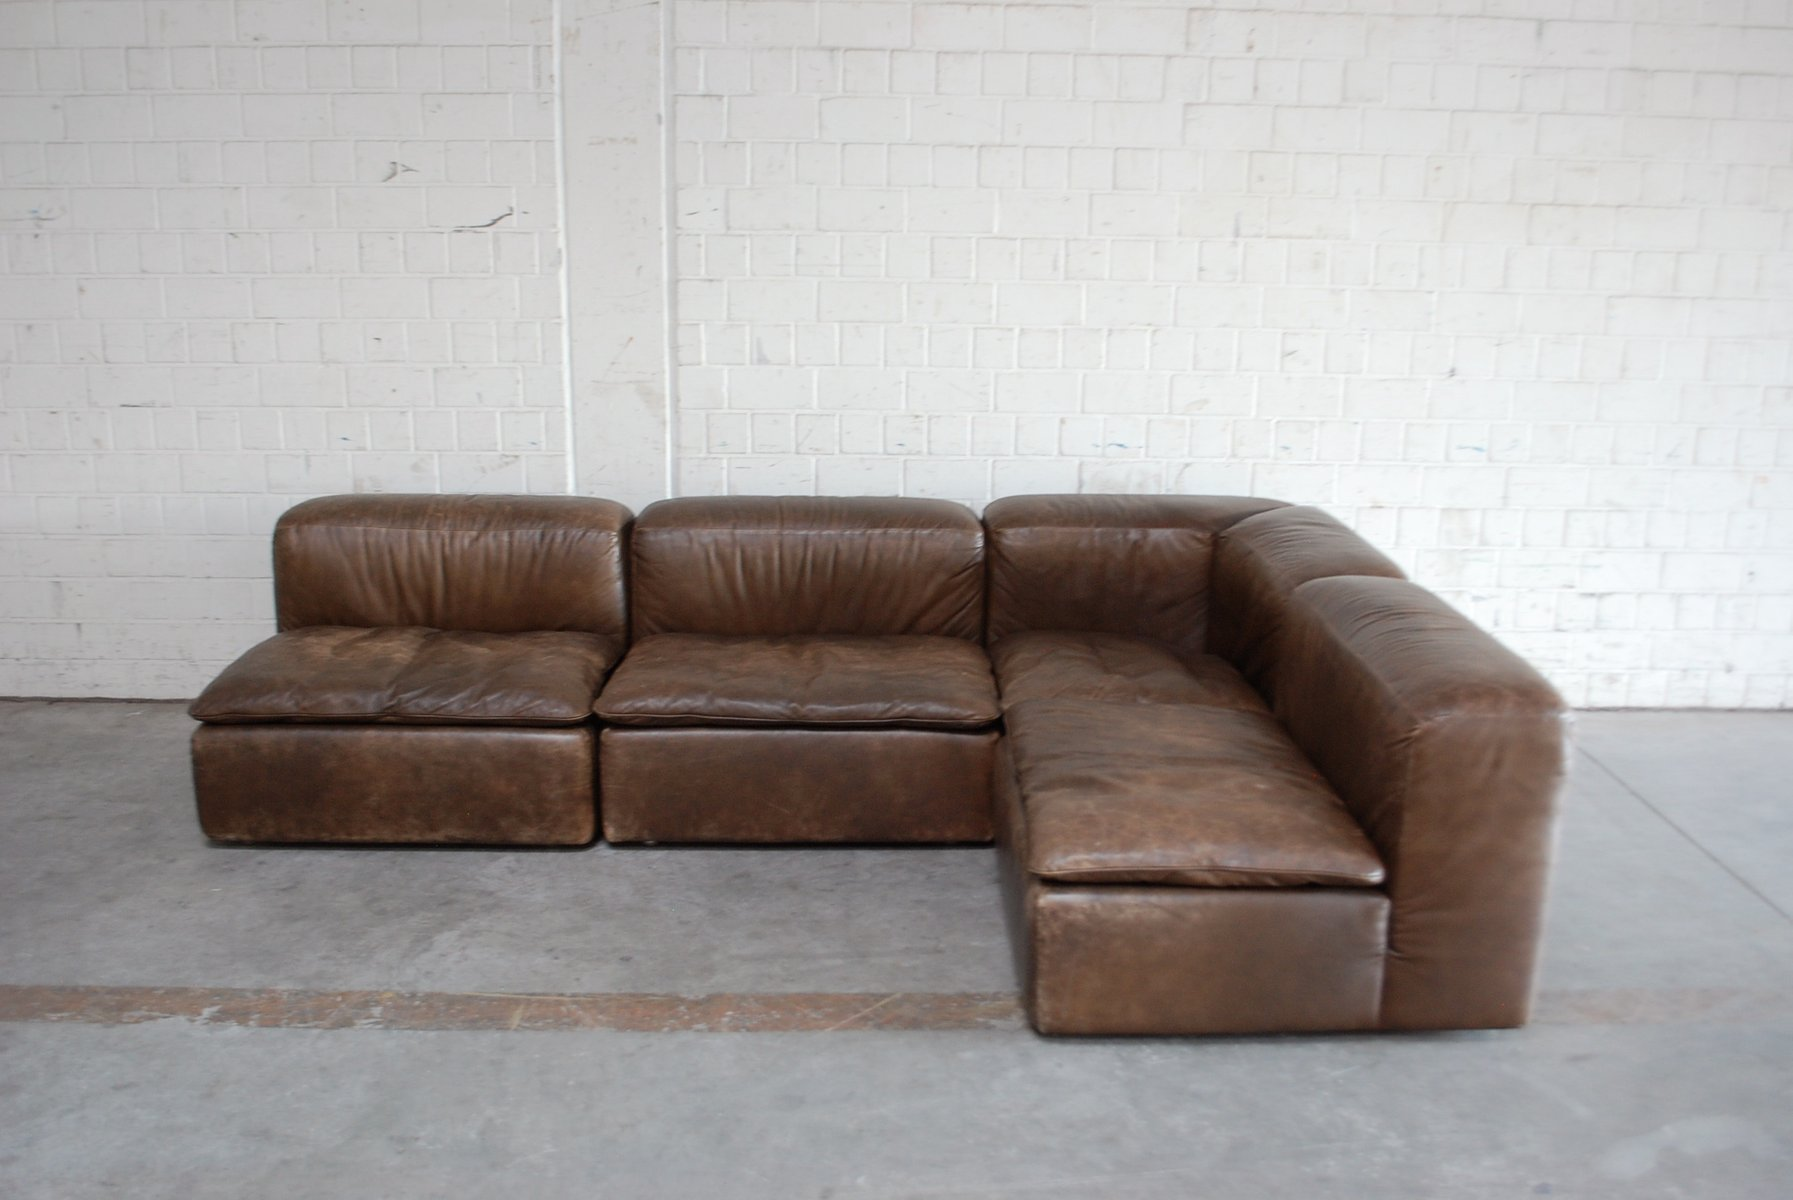 Vintage Möbel Oranienstraße Vintage Wk 550 Leather Sofa By Ernst Martin Dettinger For Wk Möbel